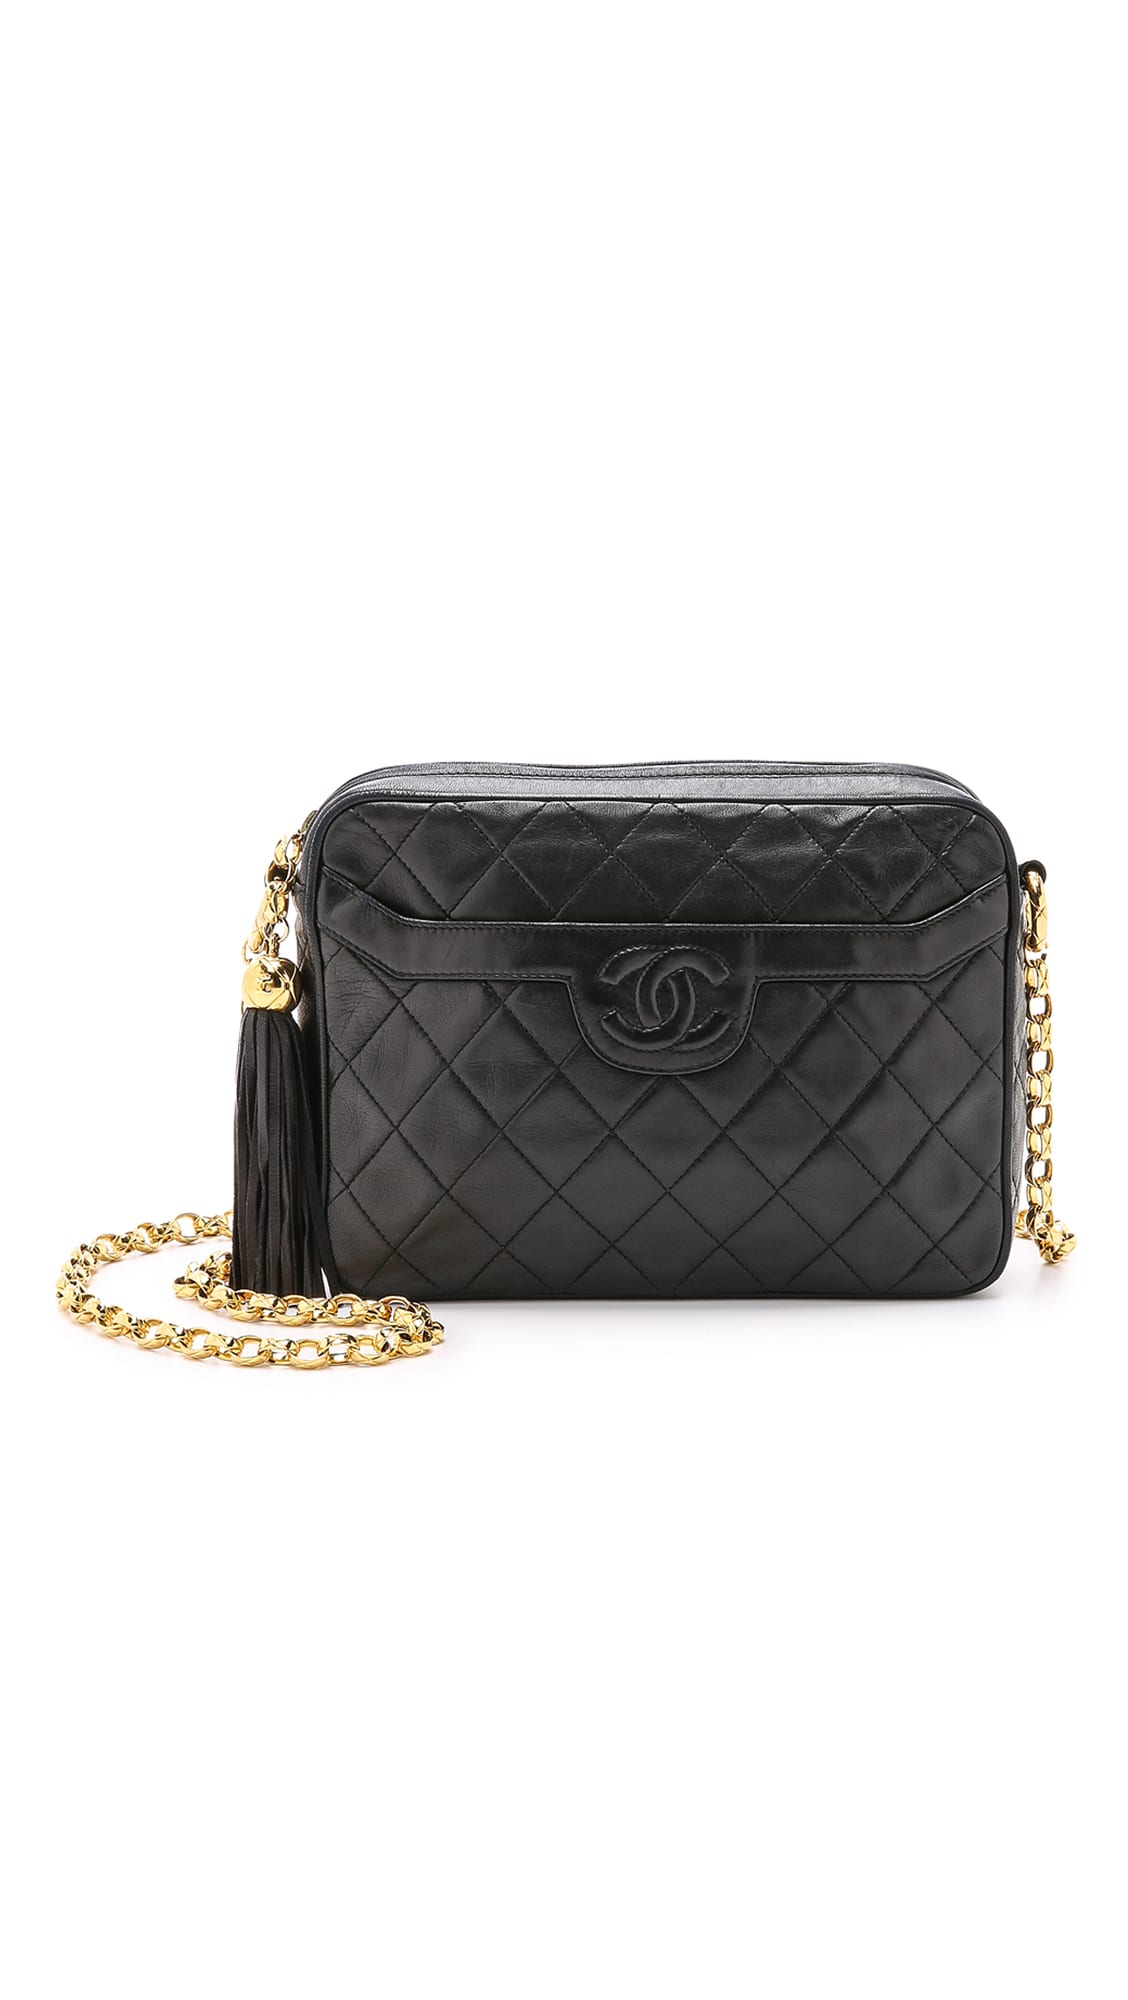 shopbop What Goes Around Comes Around Chanel Camera Bag